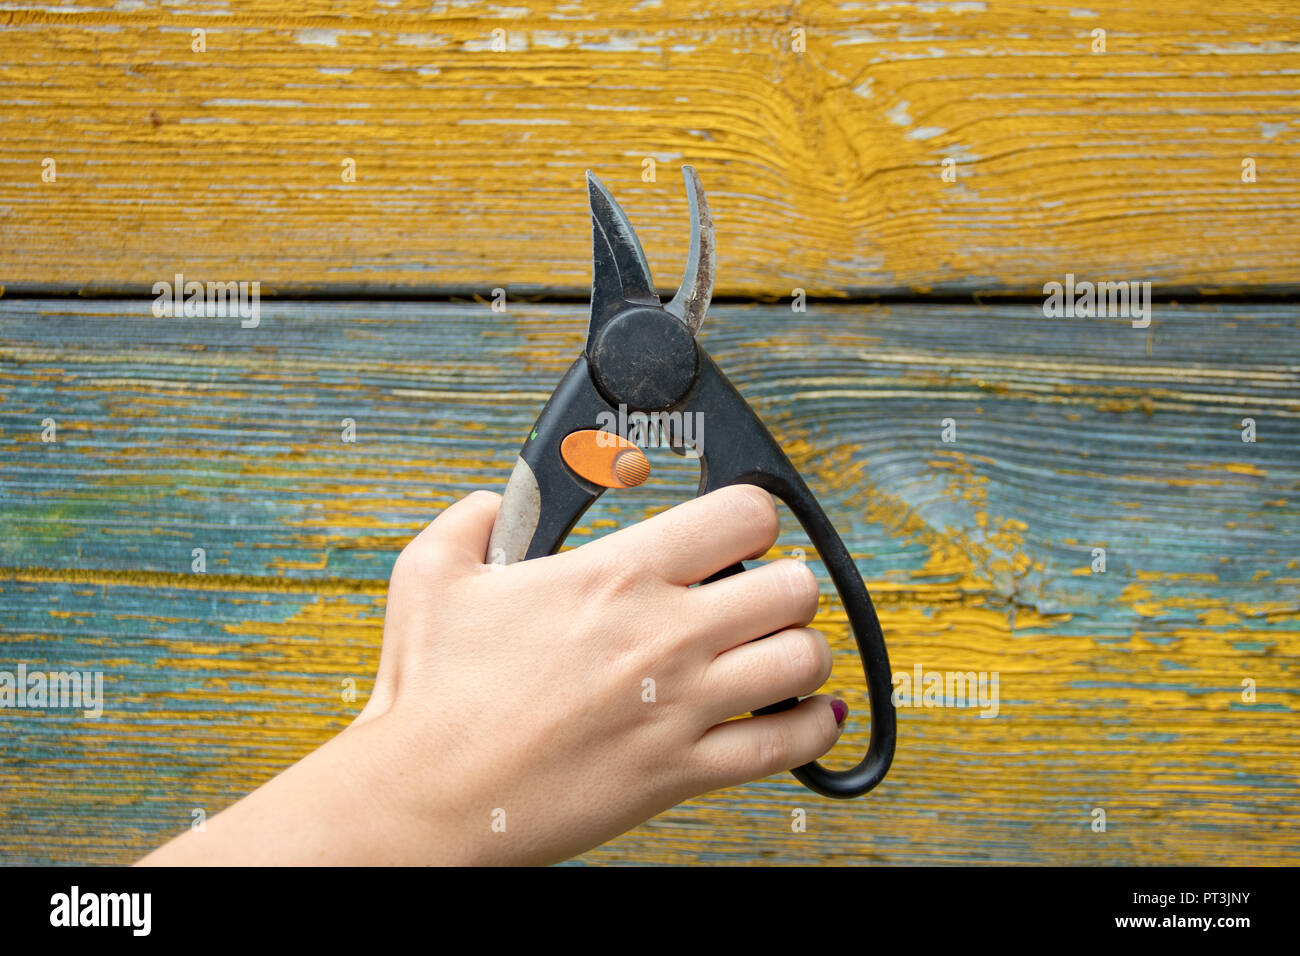 Garden tool pruner in hand on painted wooden wall background - Stock Image